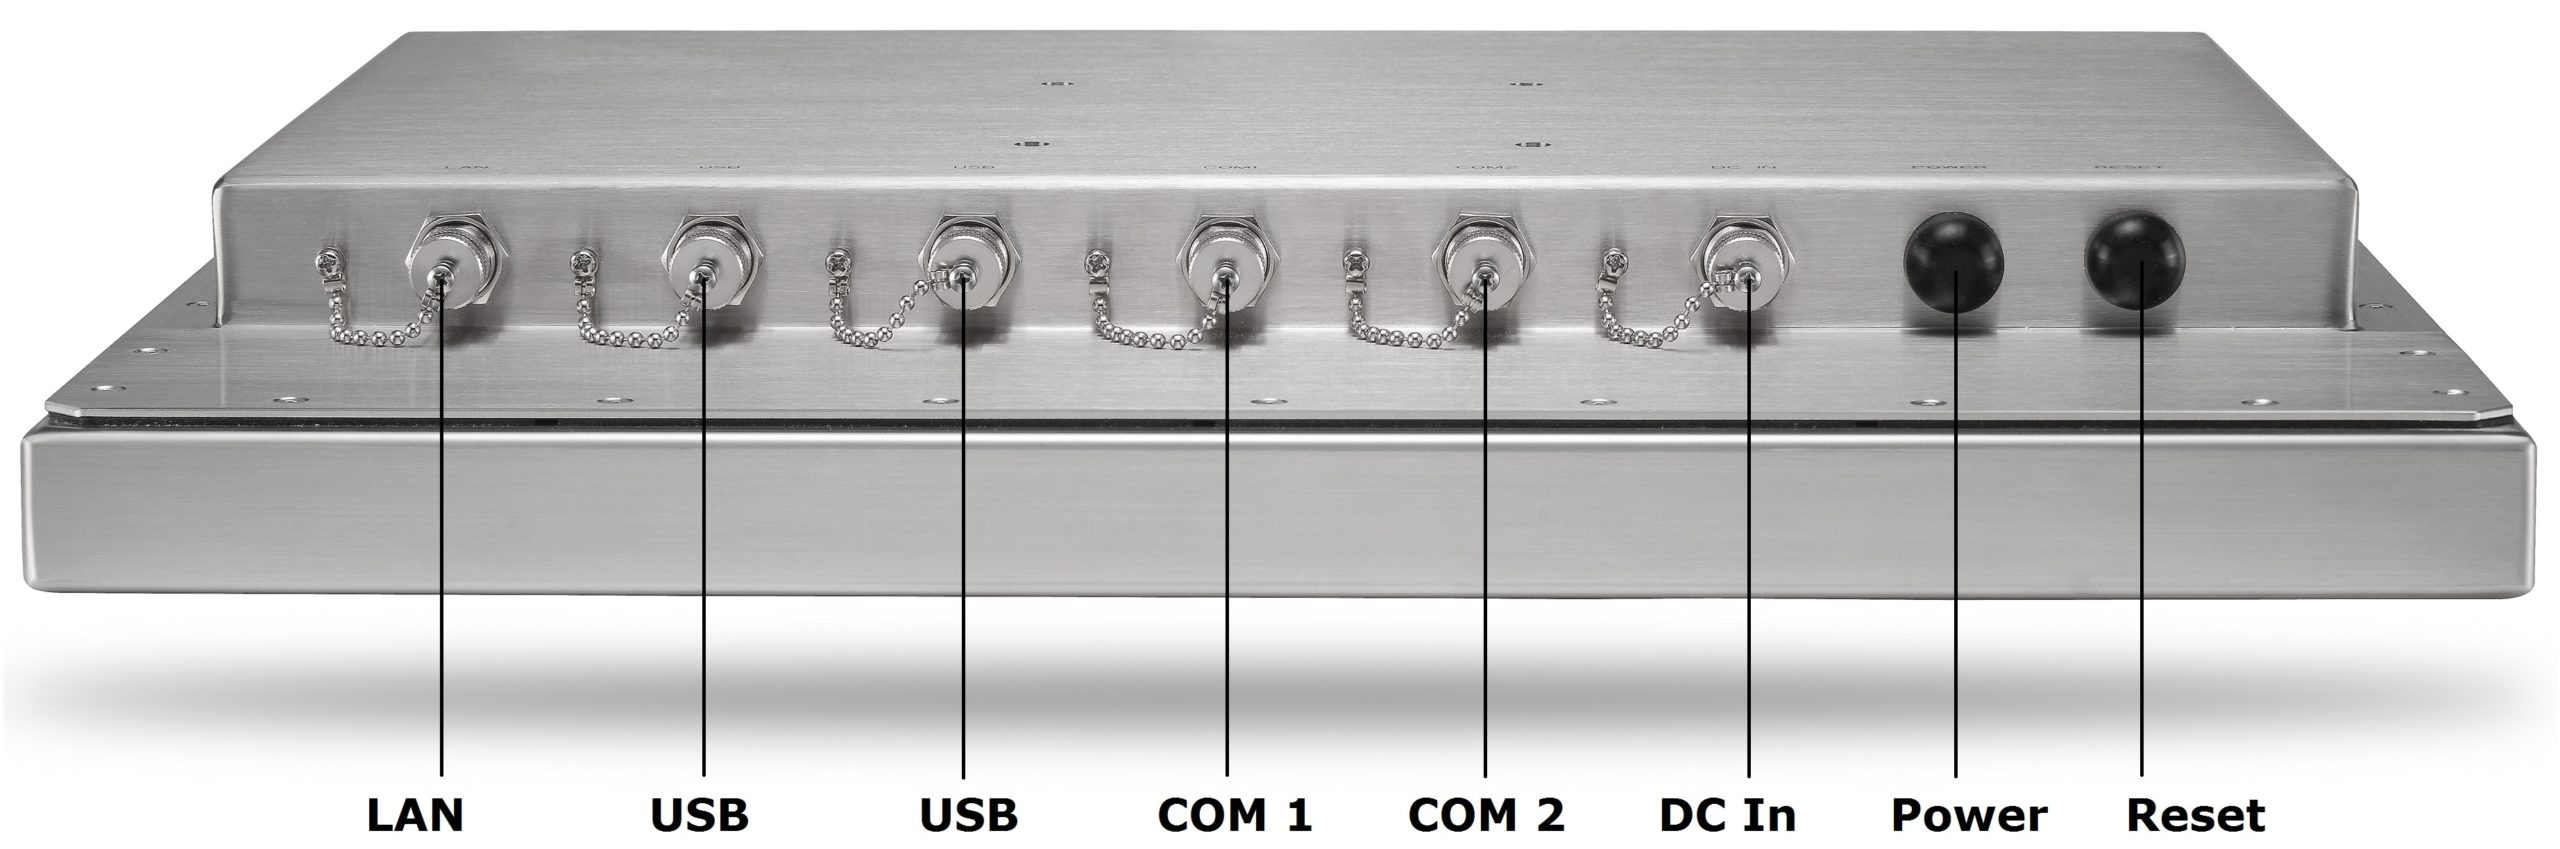 Stainless Steel Computer Inputs Outputs TS-4010-19